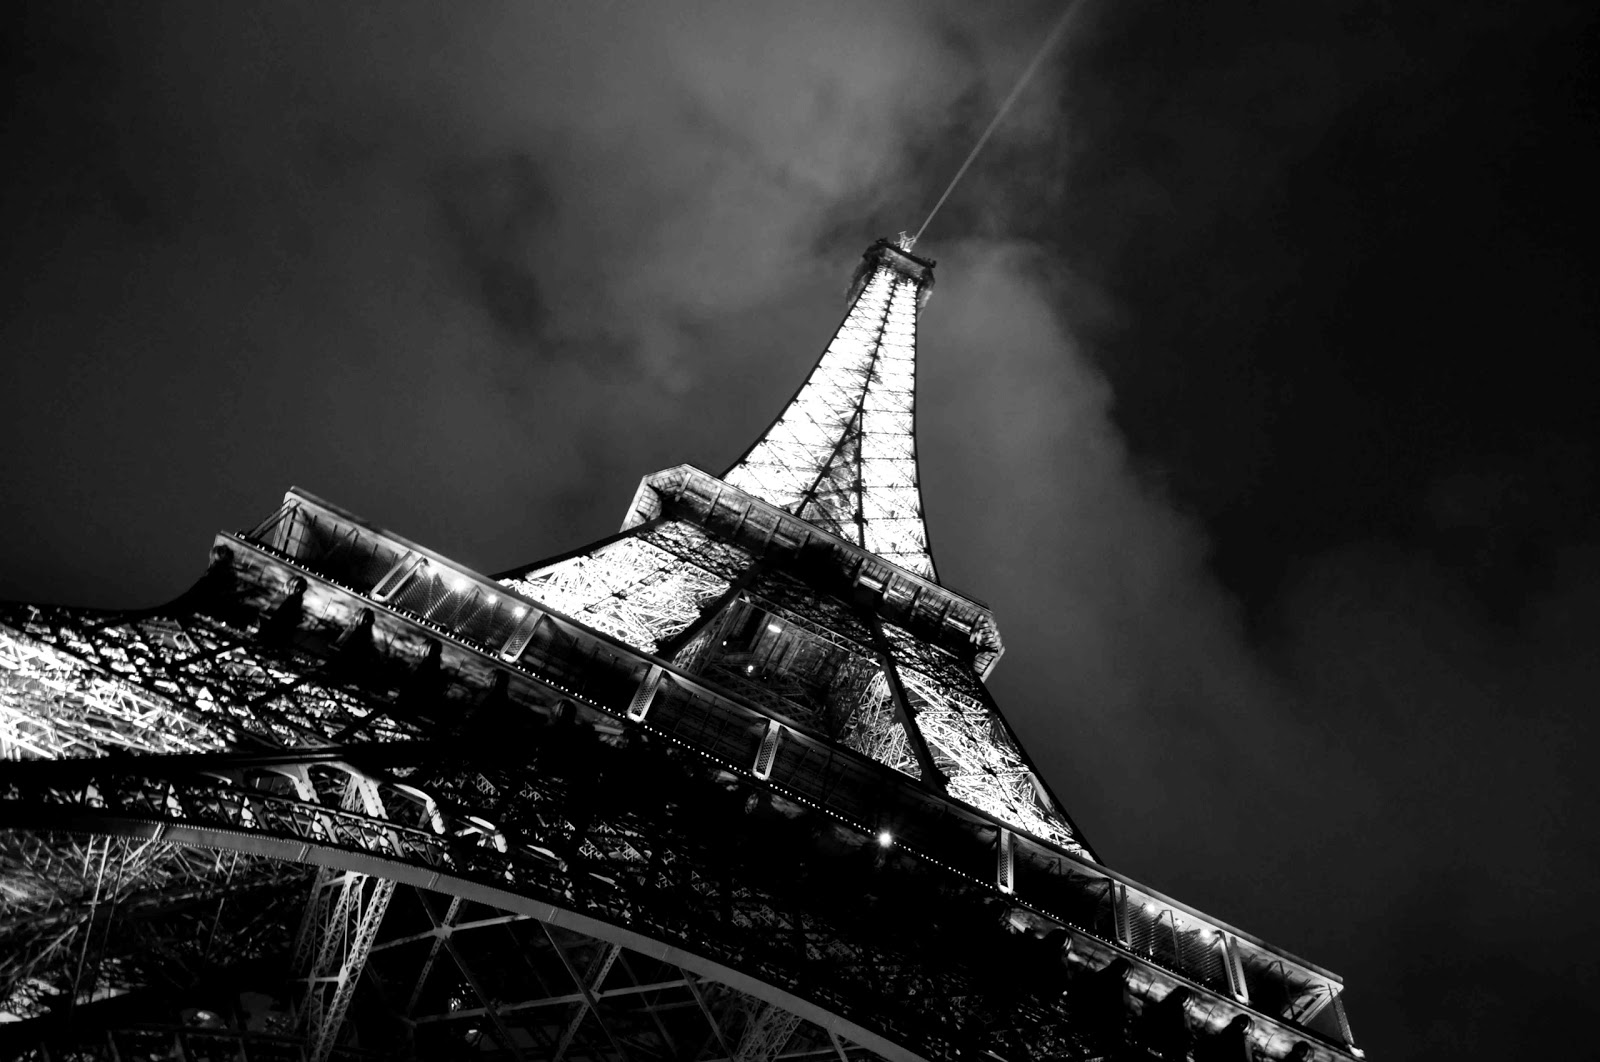 http://1.bp.blogspot.com/-gLKVO9dGbjs/UNBBi9AdyHI/AAAAAAAAEgo/9j7607w8wVQ/s1600/Eiffel-tower-paris-black-and-white-photos-07.jpg